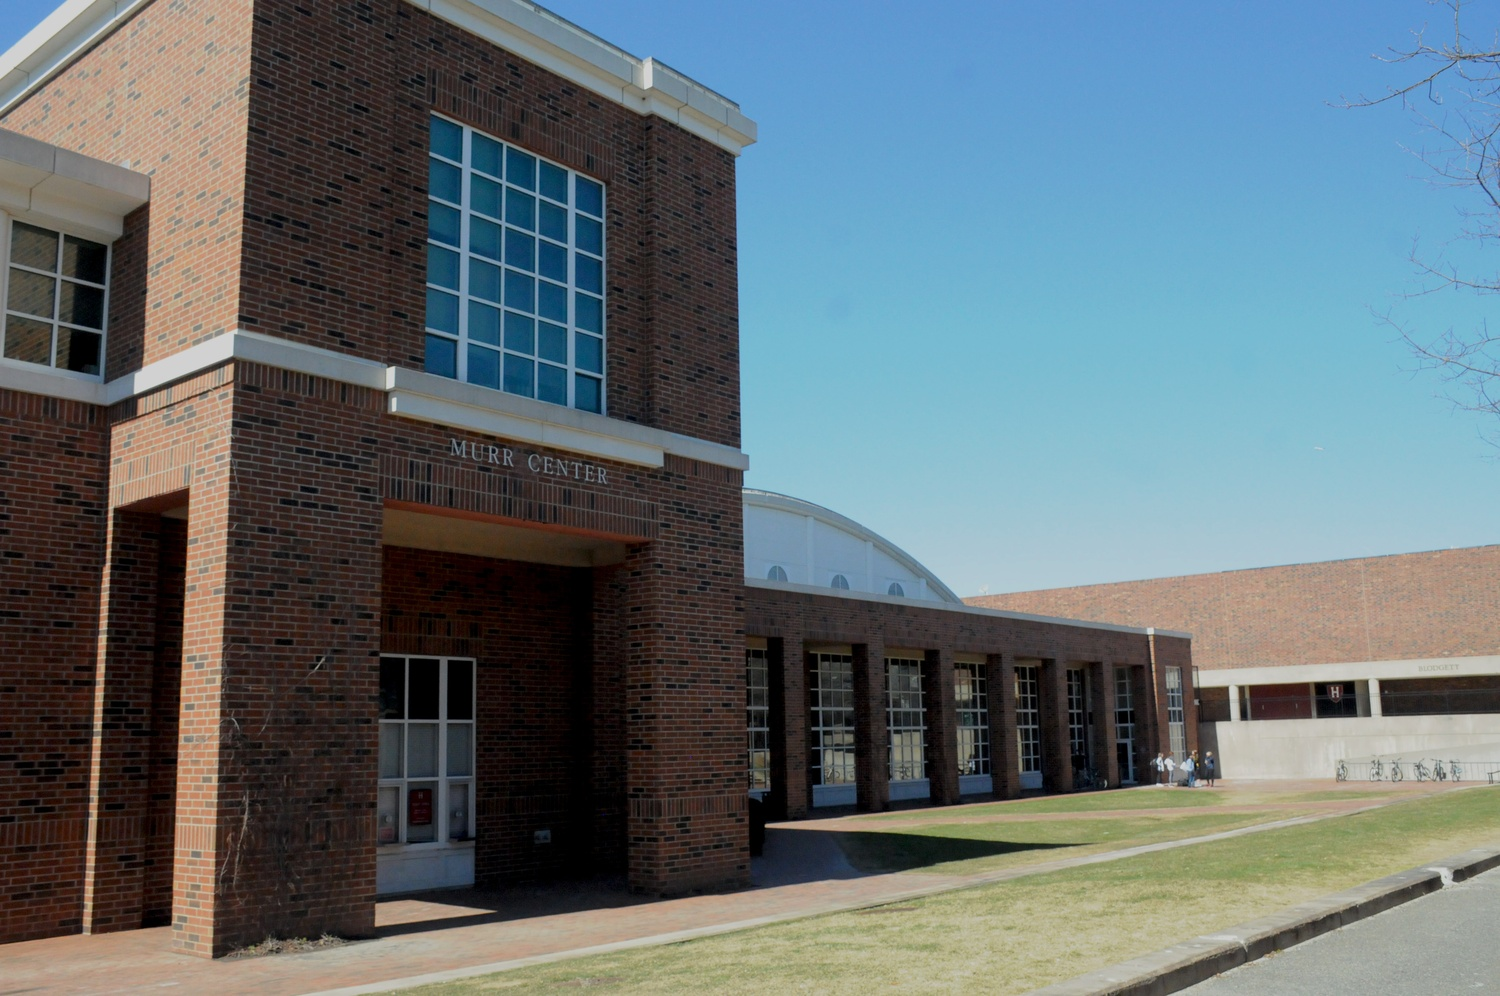 The Murr Center houses a number of Athletics Department administrative offices.